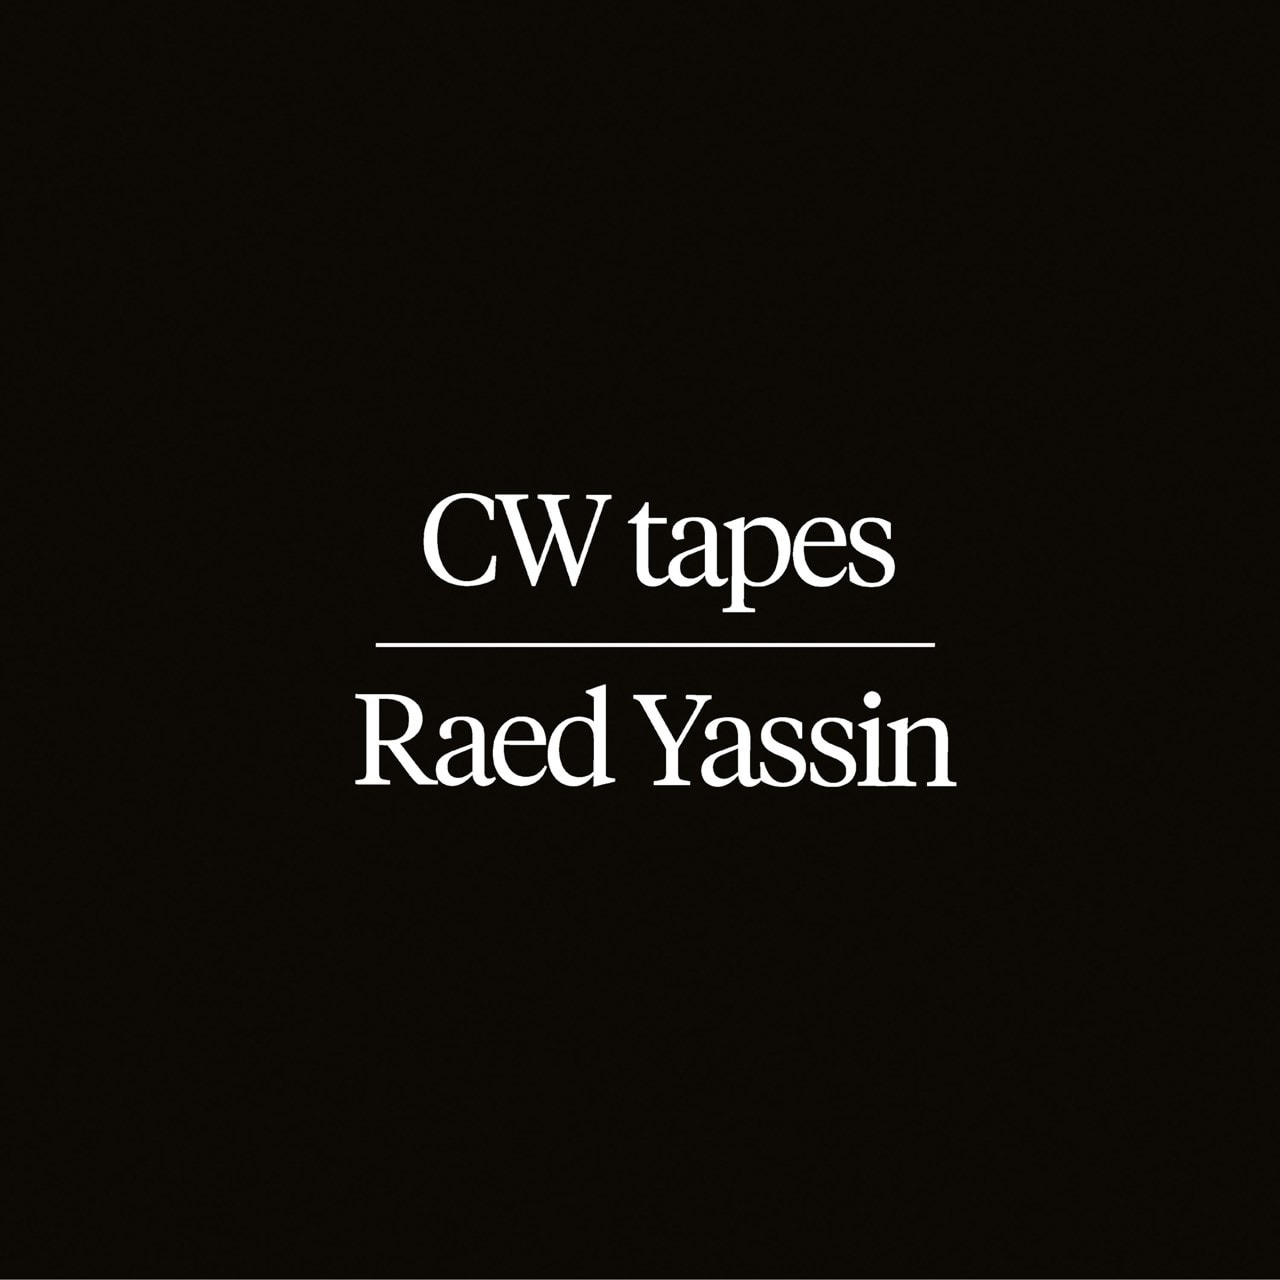 CW Tapes - 1